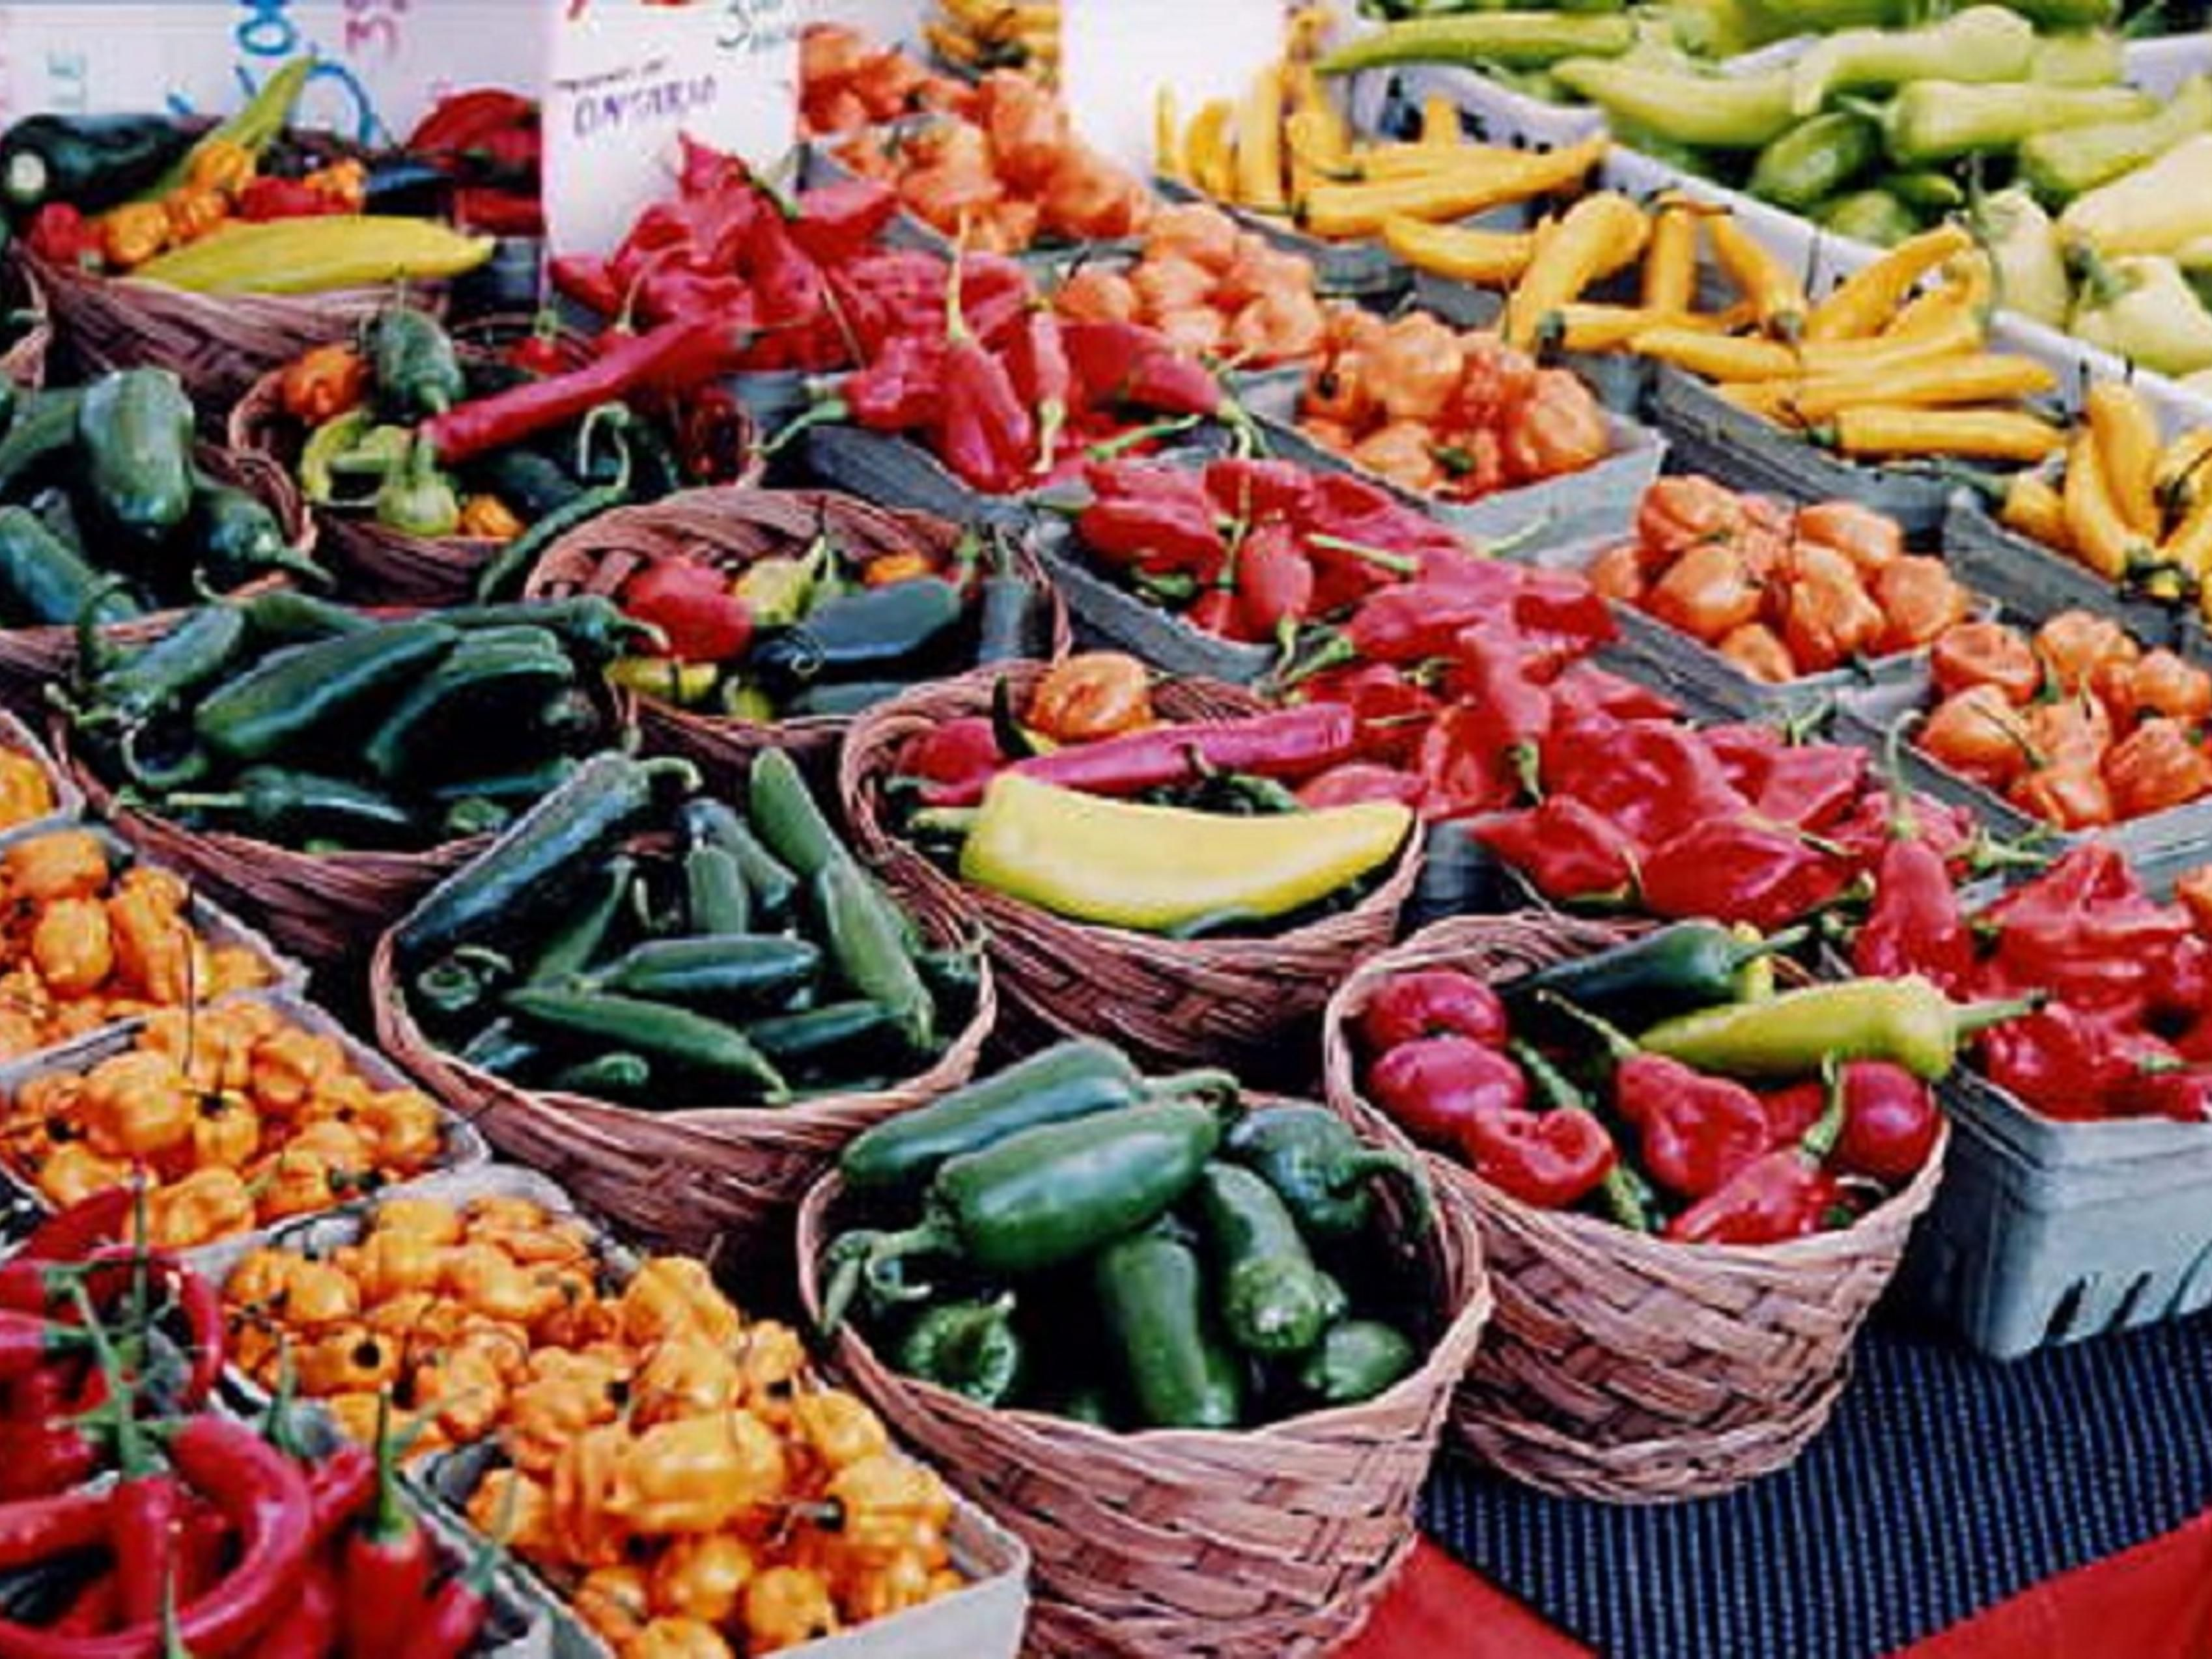 Farmer's Market every Thursday and Saturday